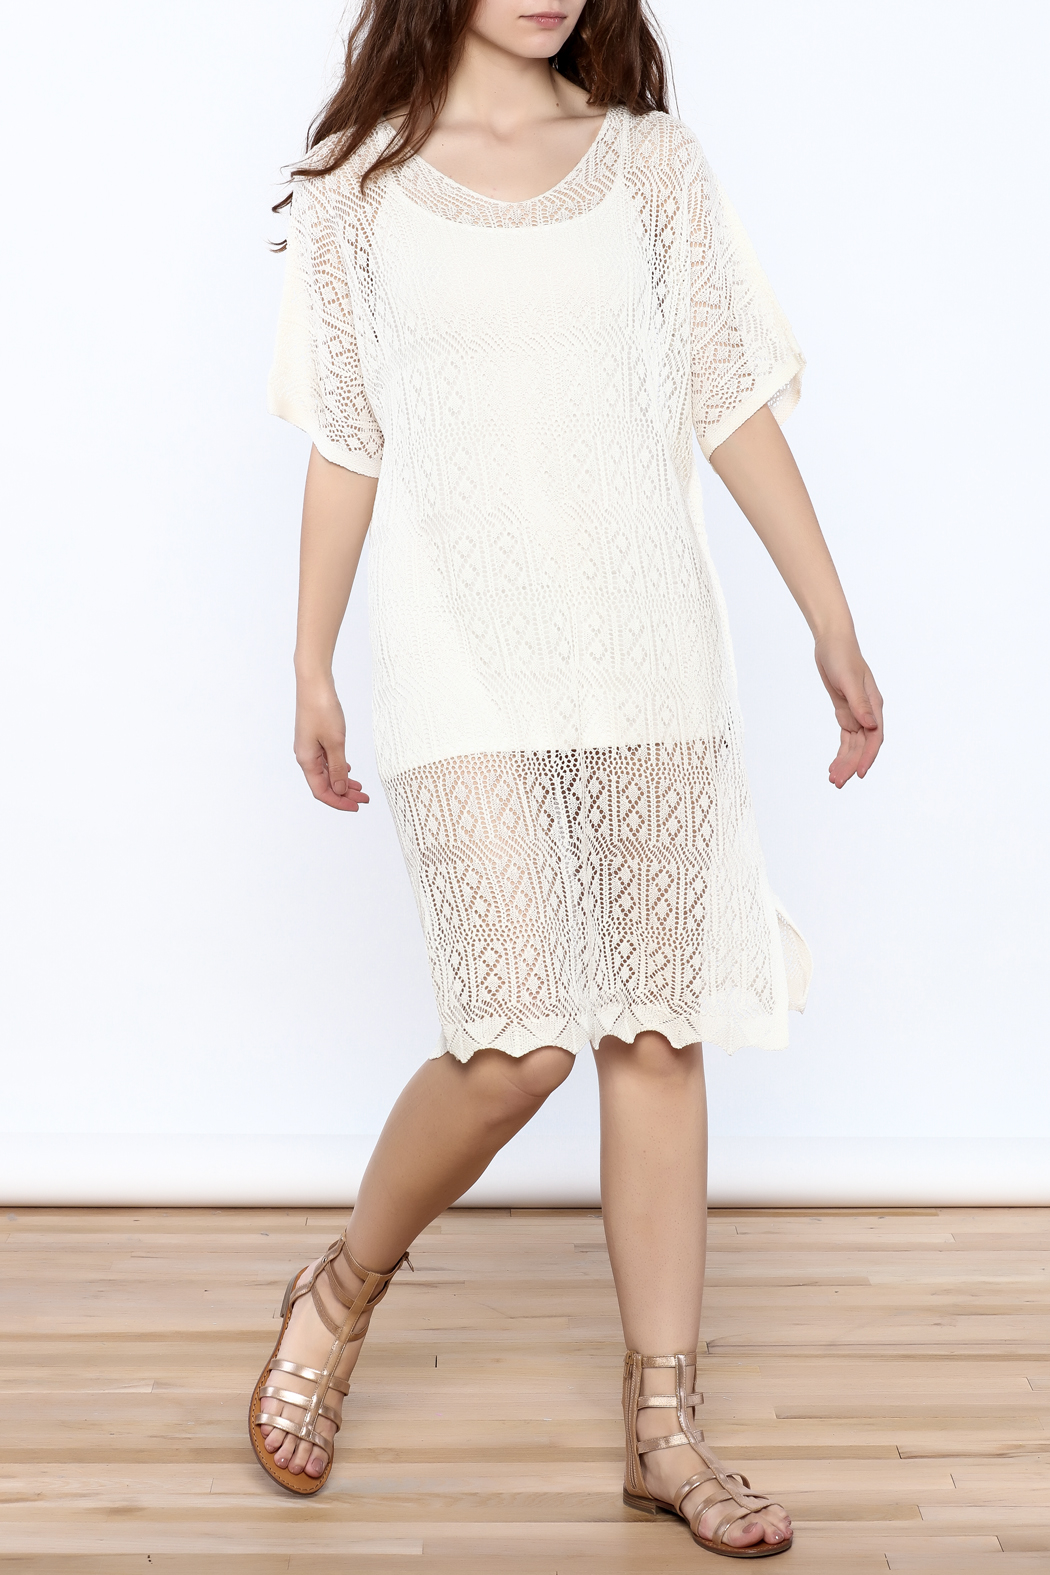 Charmed by JLM Ivory Crochet Cover Up - Main Image